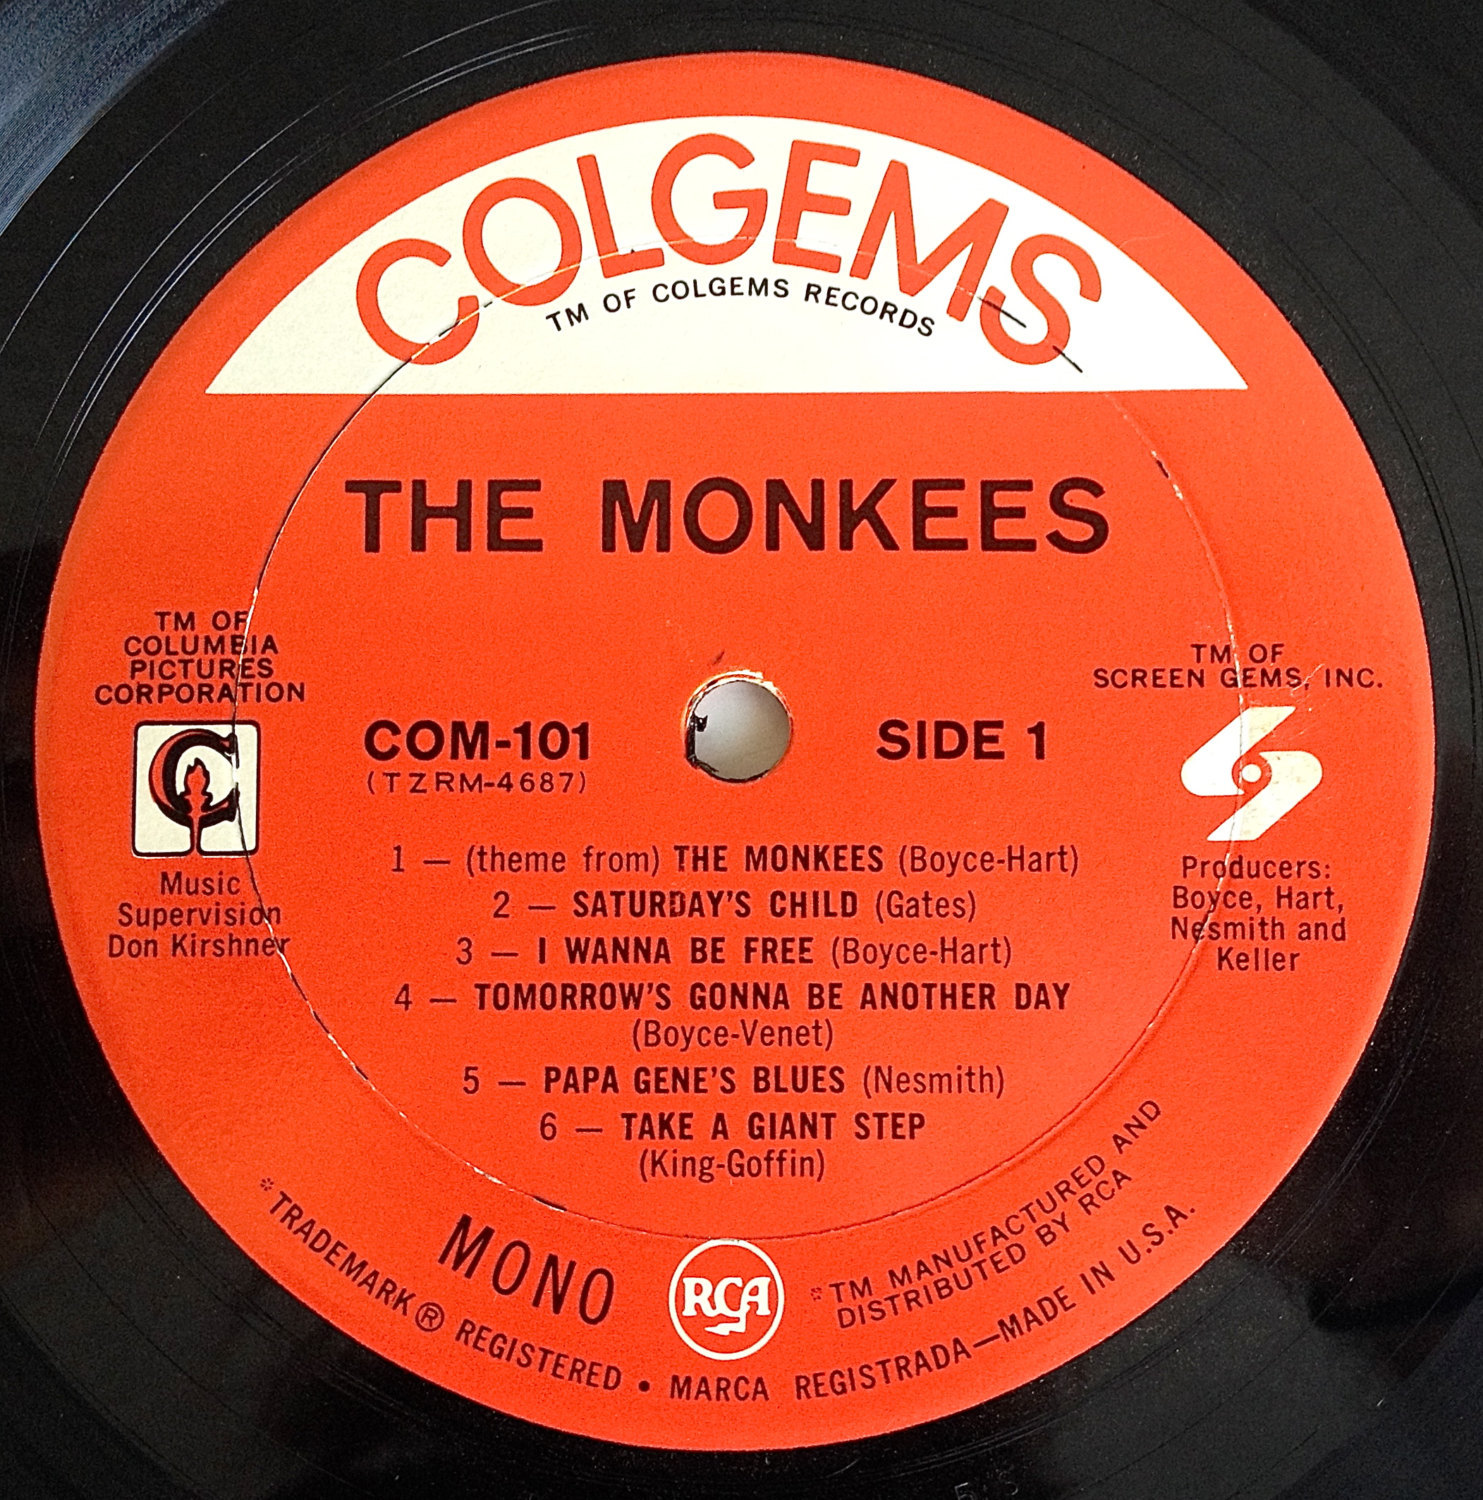 The Monkees - Self Titled LP Vinyl Record Album, Colgems - COM-101, Rock, Pop Ro